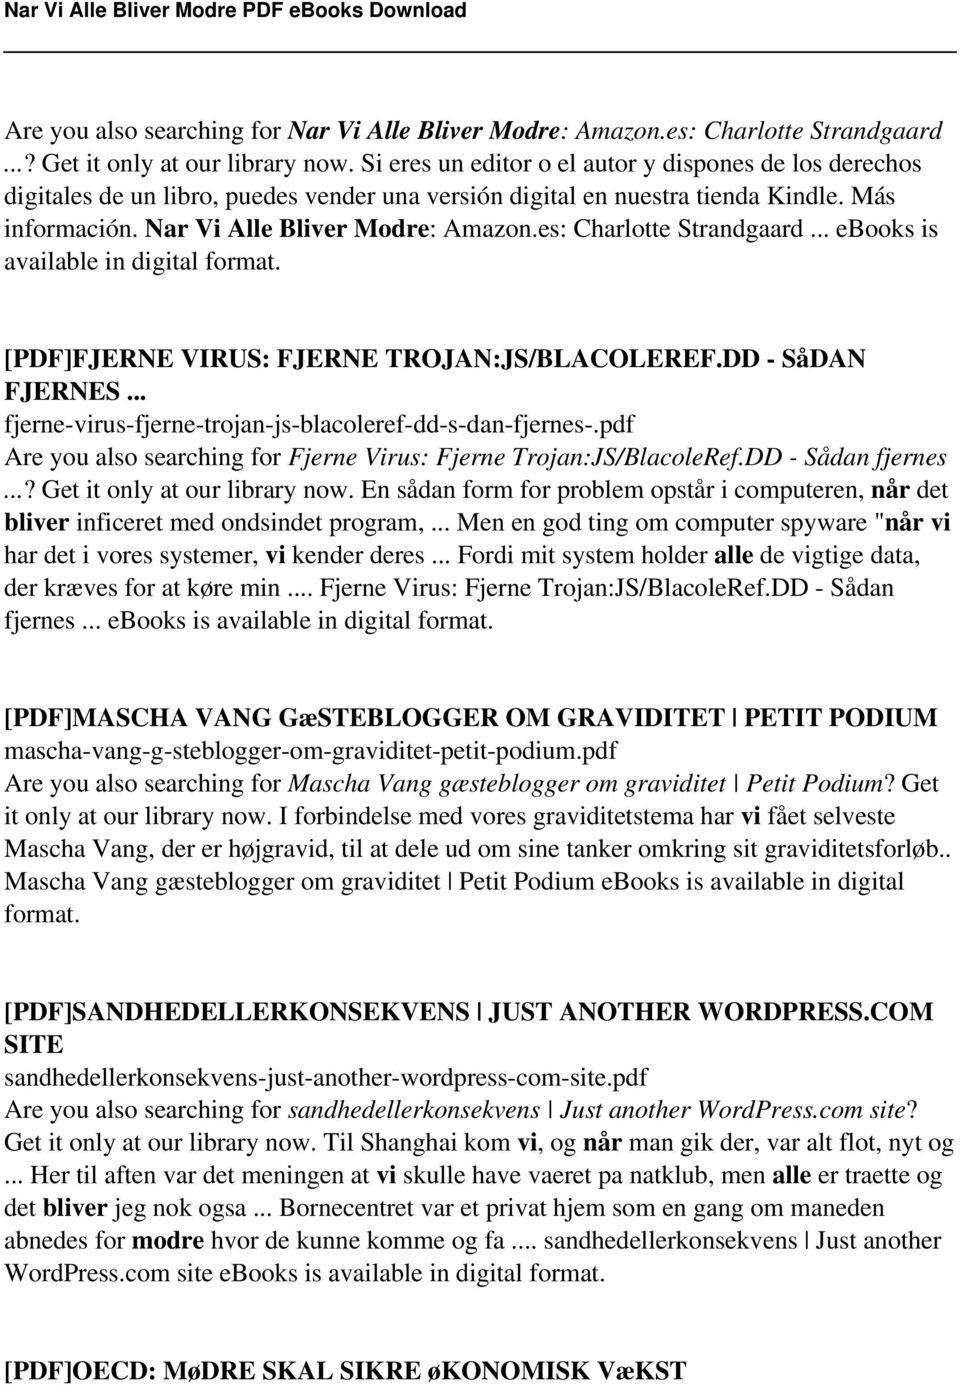 es: Charlotte Strandgaard... ebooks is available in digital format. [PDF]FJERNE VIRUS: FJERNE TROJAN:JS/BLACOLEREF.DD - SåDAN FJERNES... fjerne-virus-fjerne-trojan-js-blacoleref-dd-s-dan-fjernes-.